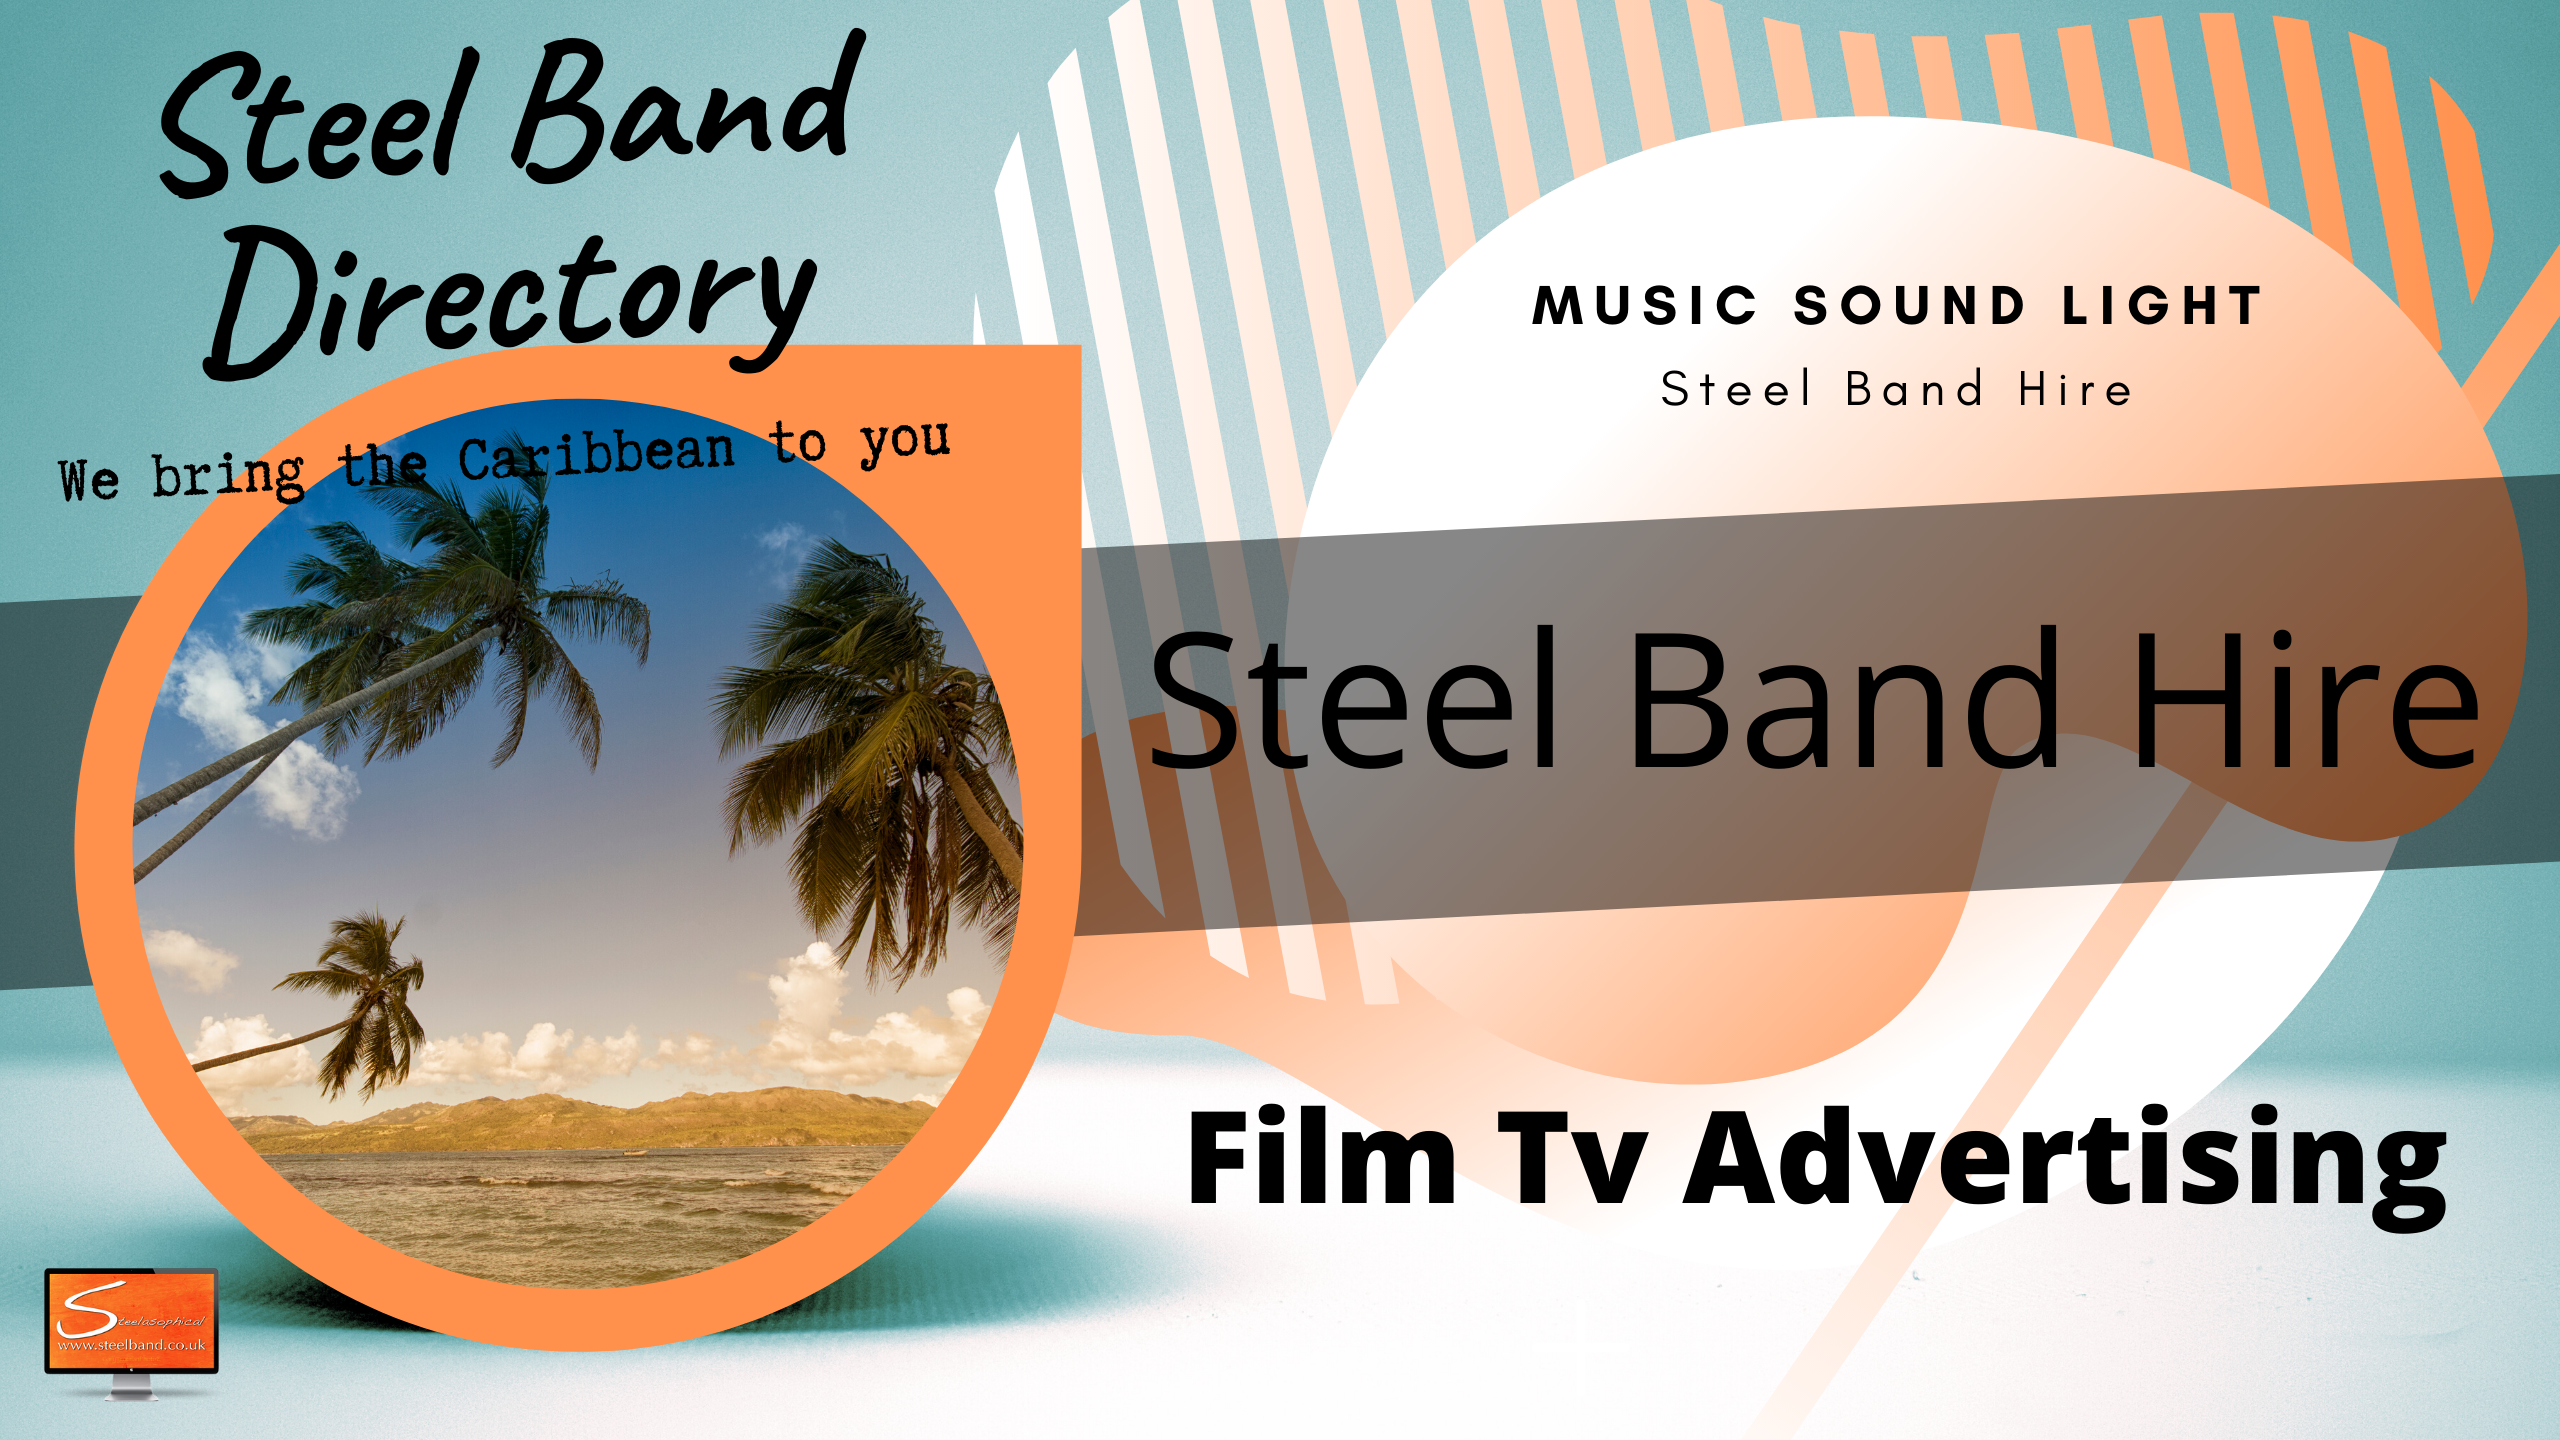 Caribbean Island steel bands for hire uk rr